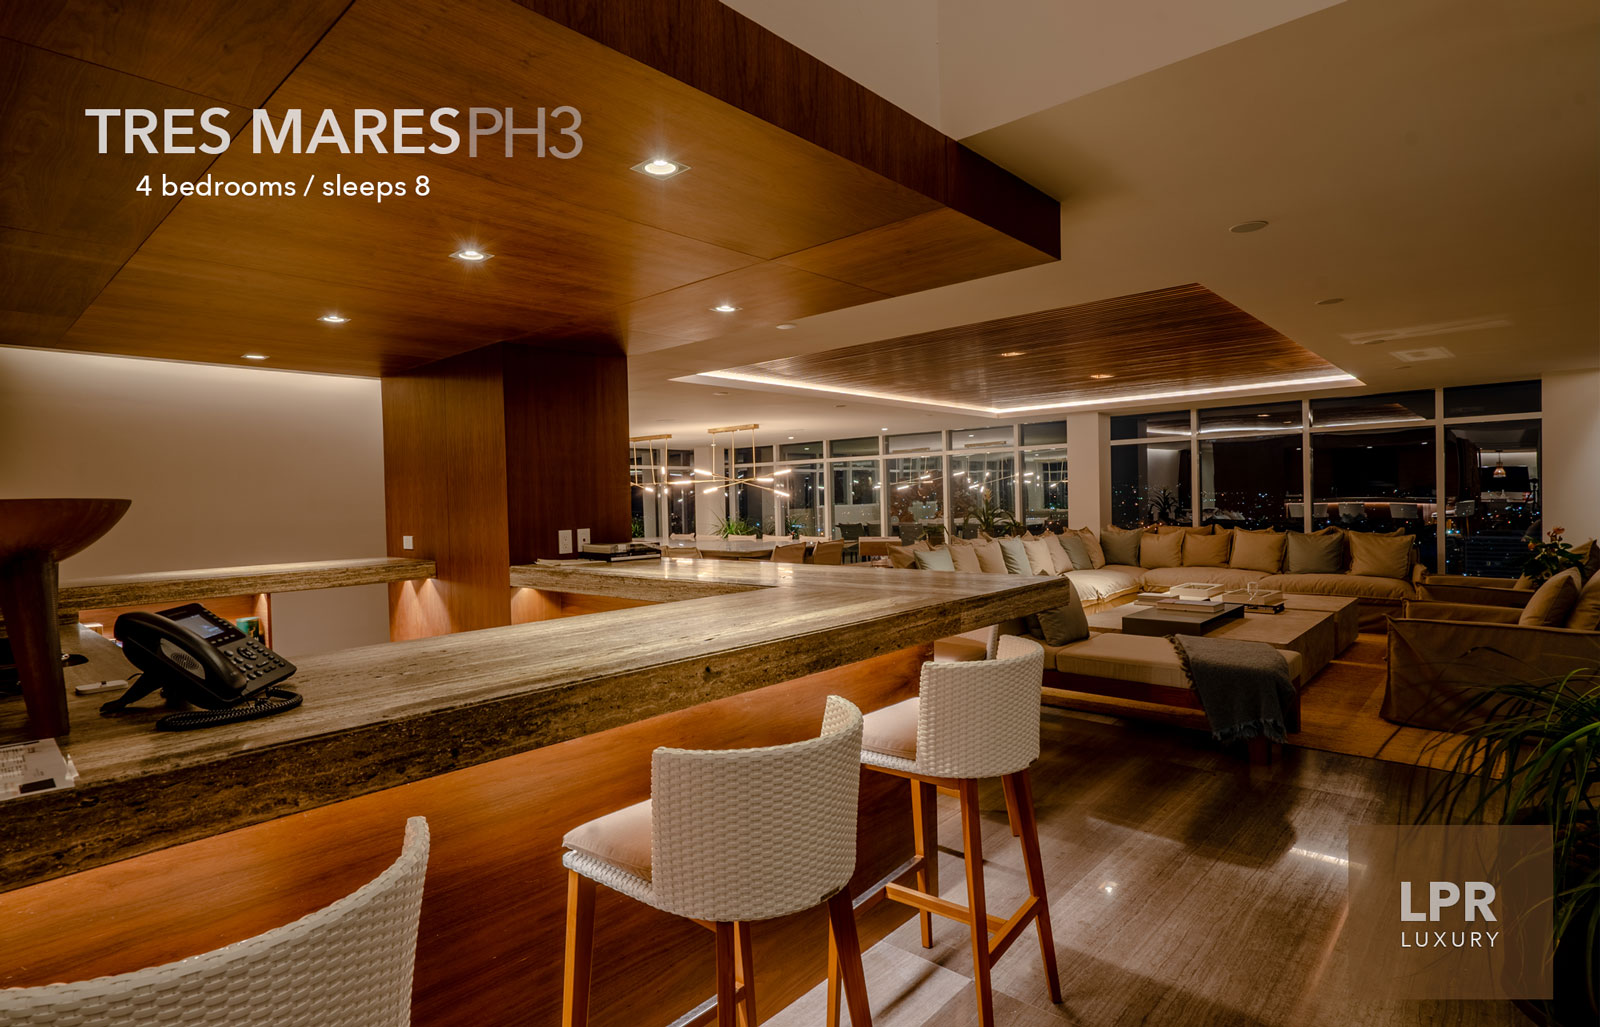 The Queen Penthouse at Tres Mares - Ultra Luxury Real estate in Marina Vallarta, Puerto Vallarta, Jalisco, Mexico